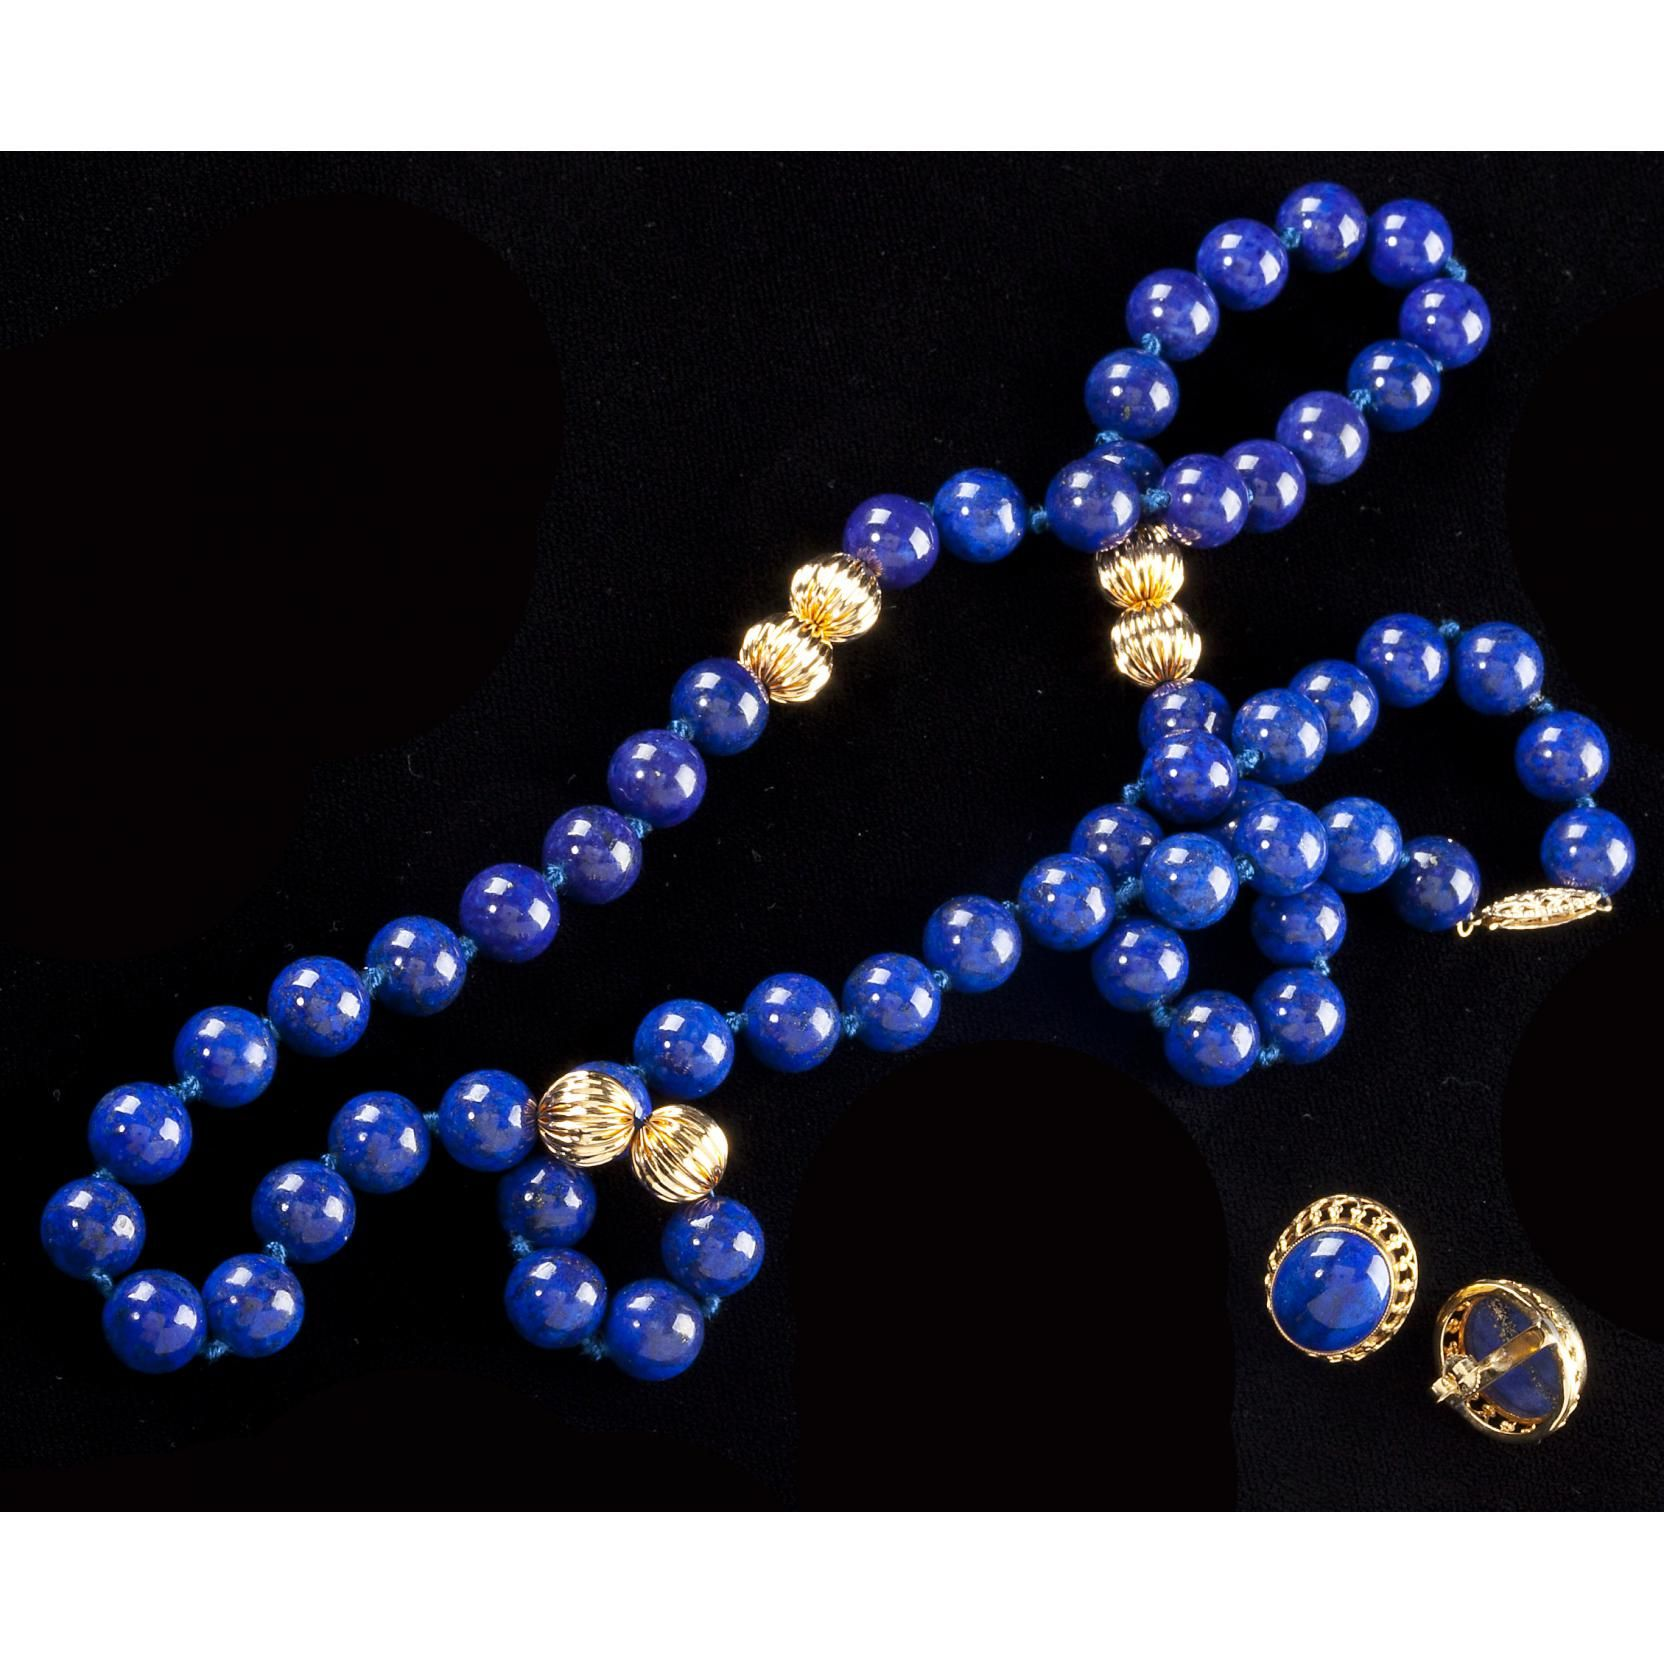 Gold and Lapis Necklace and Earrings Sold $900.